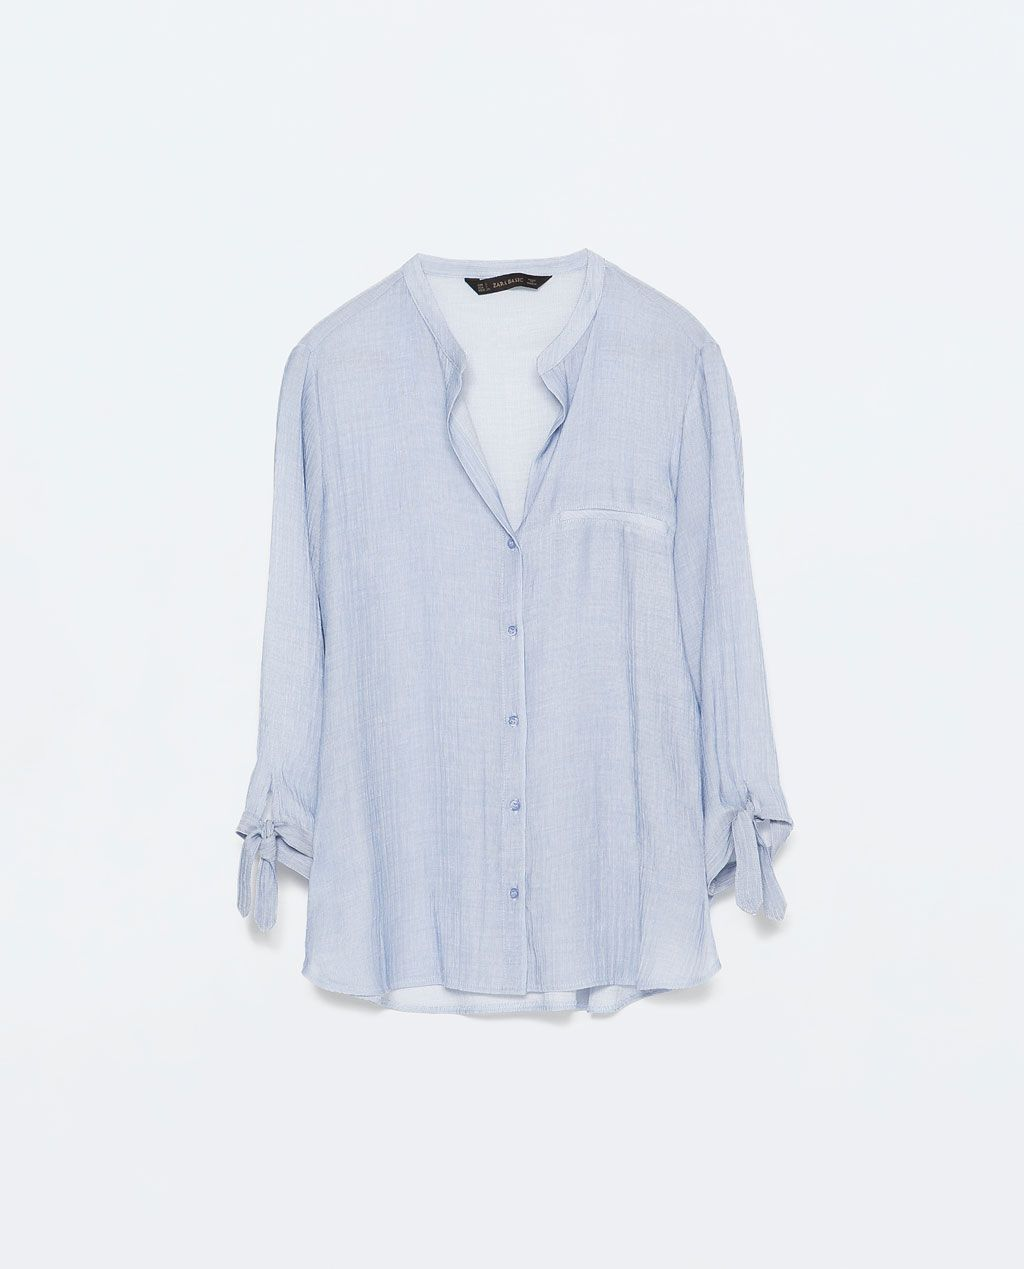 77c78f17 ZARA - WOMAN - STRIPED BLOUSE WITH TIE-SLEEVES | Style inspiration ...